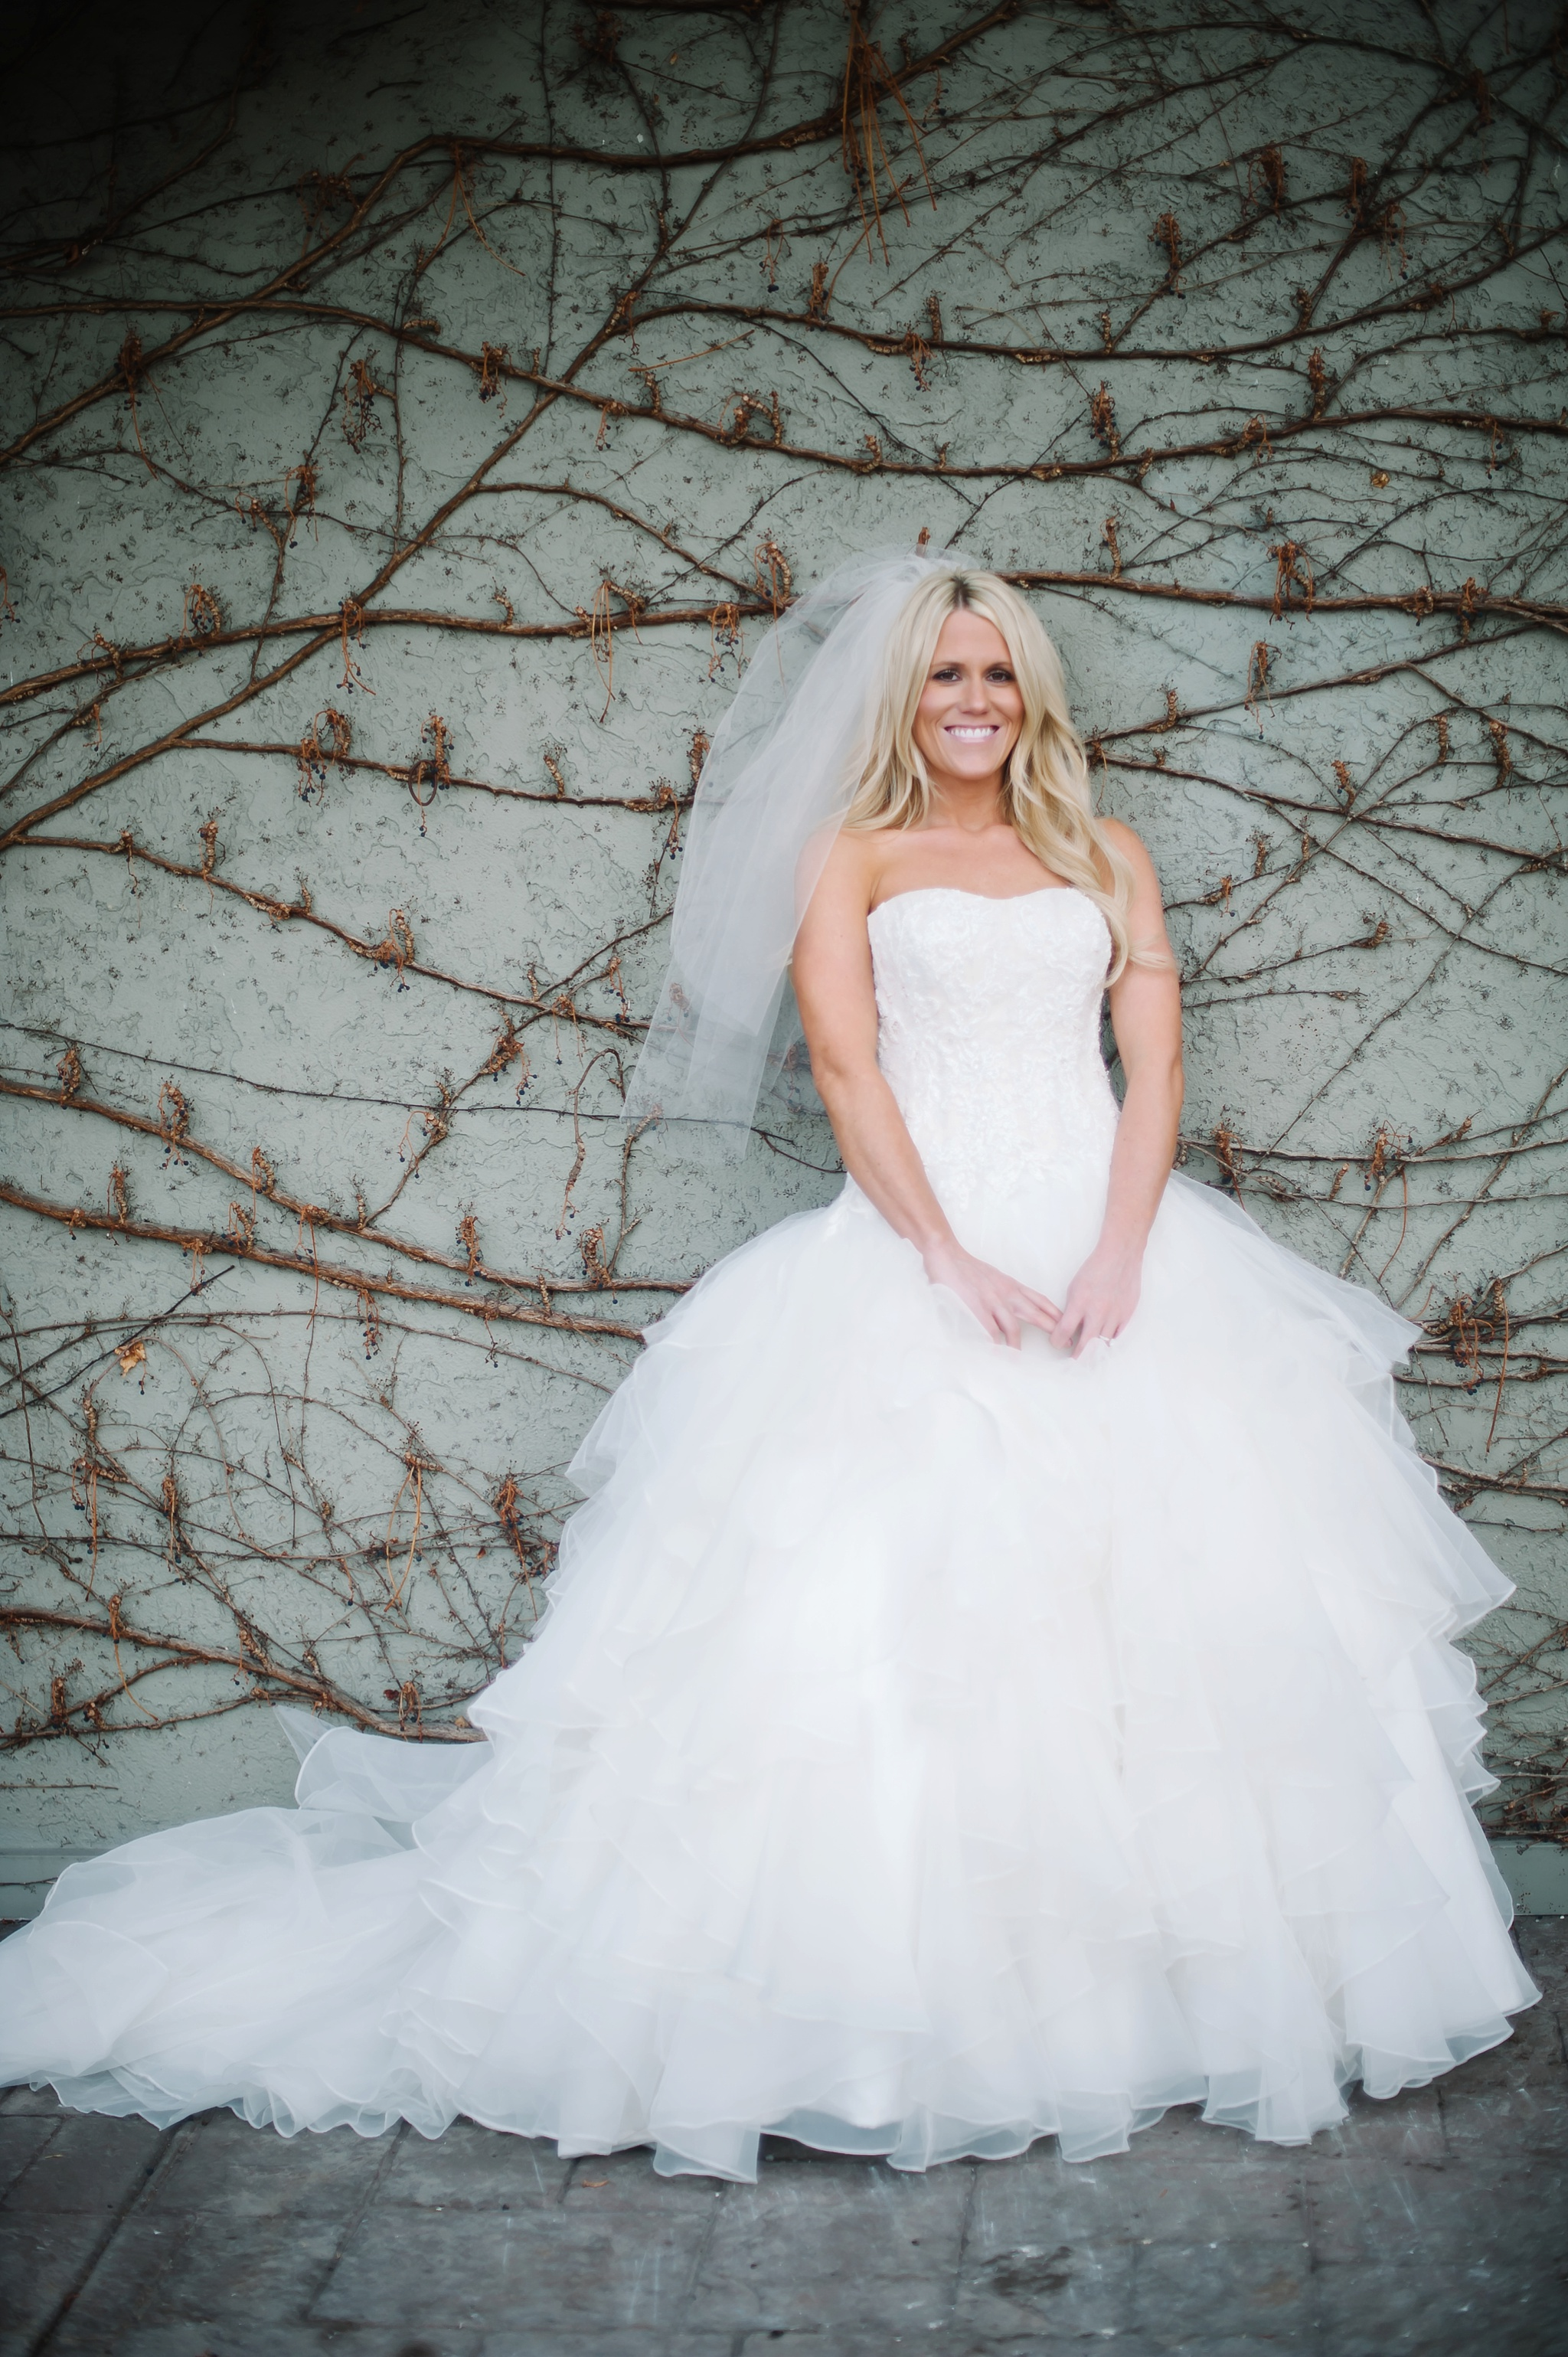 SLC Bridal Photographer Ali Sumsion 015